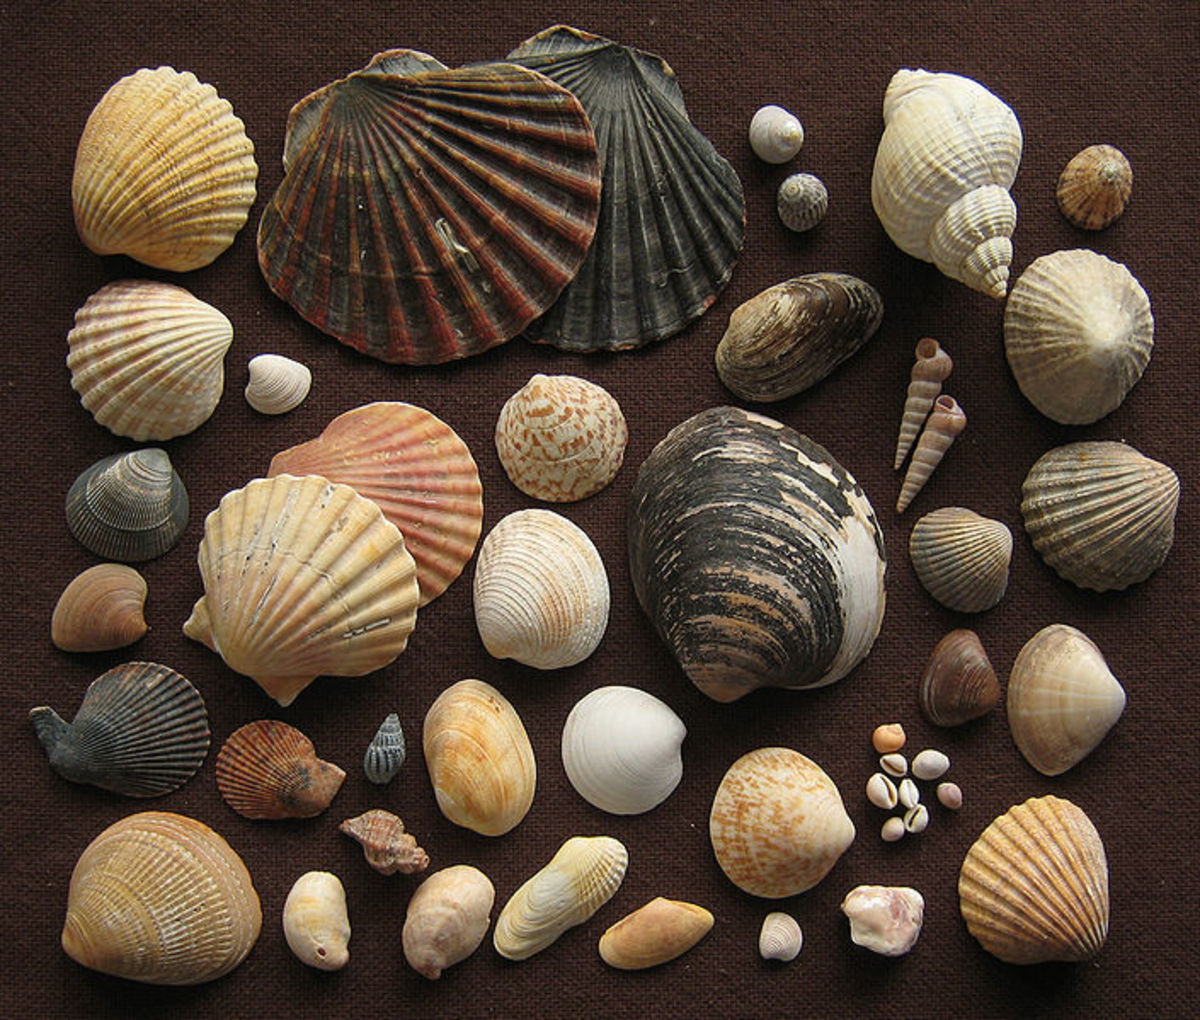 Seashells by the Seashore - Naples, Florida